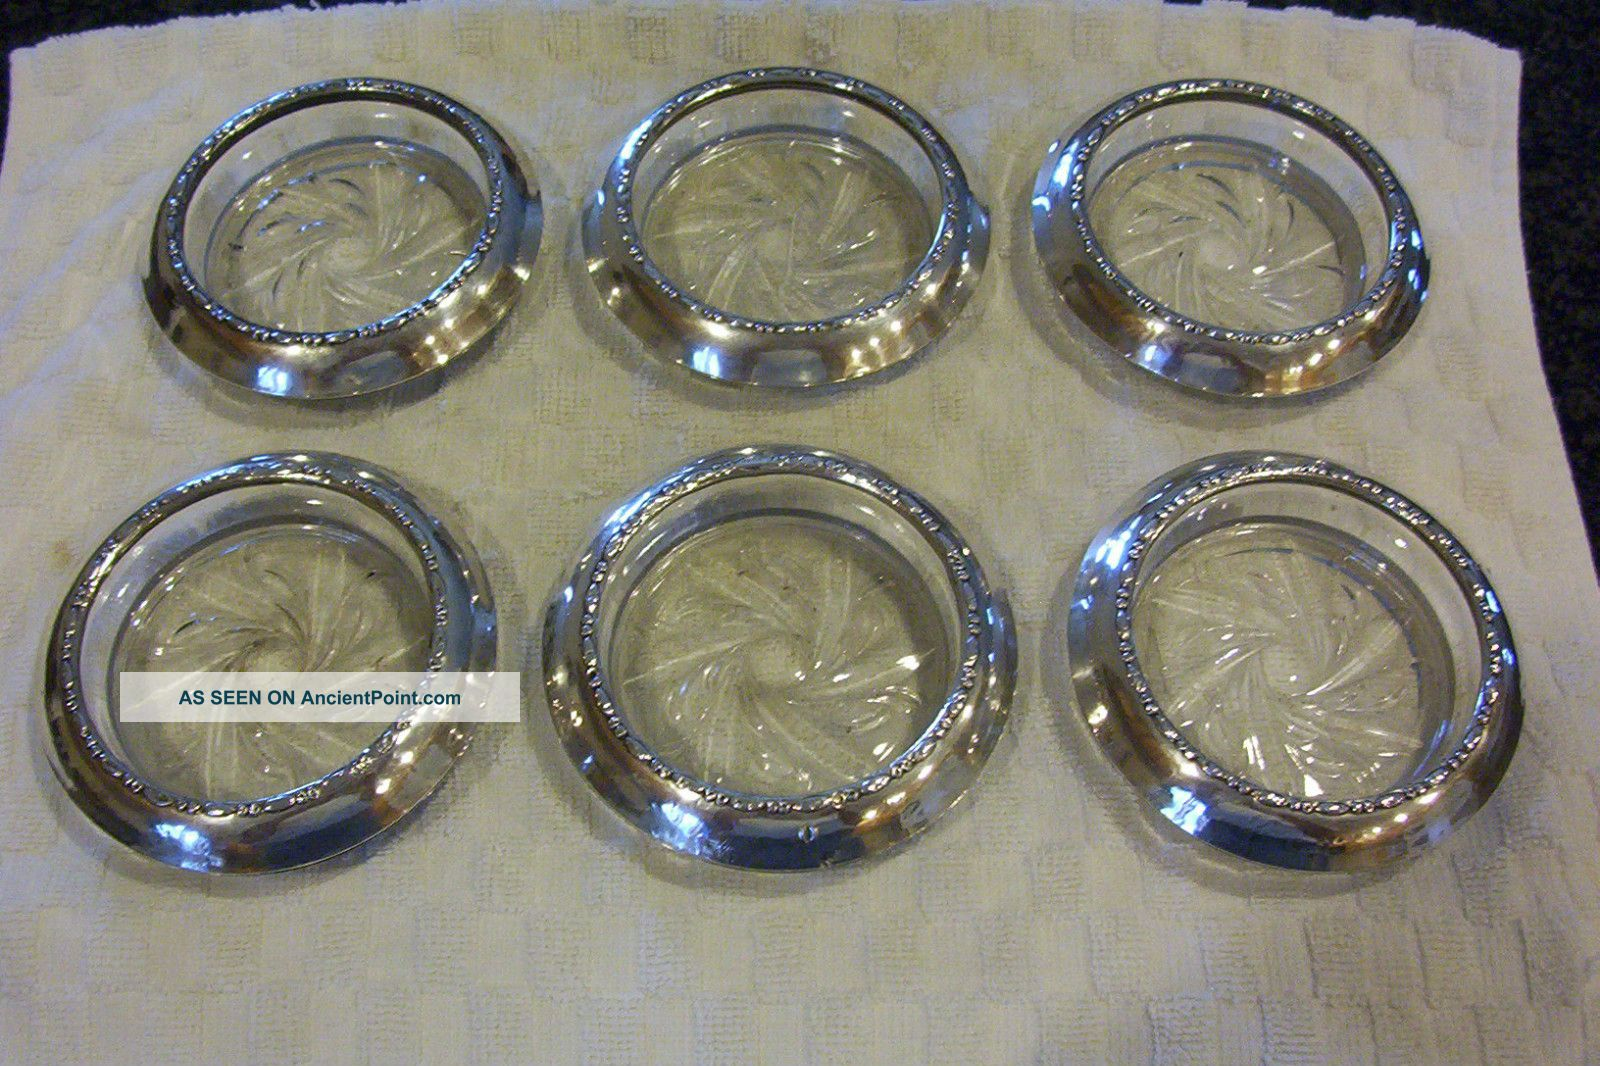 Vintage Set Of 6 Sterling Silver And Cut Glass/crystal Coasters Amston Dishes & Coasters photo